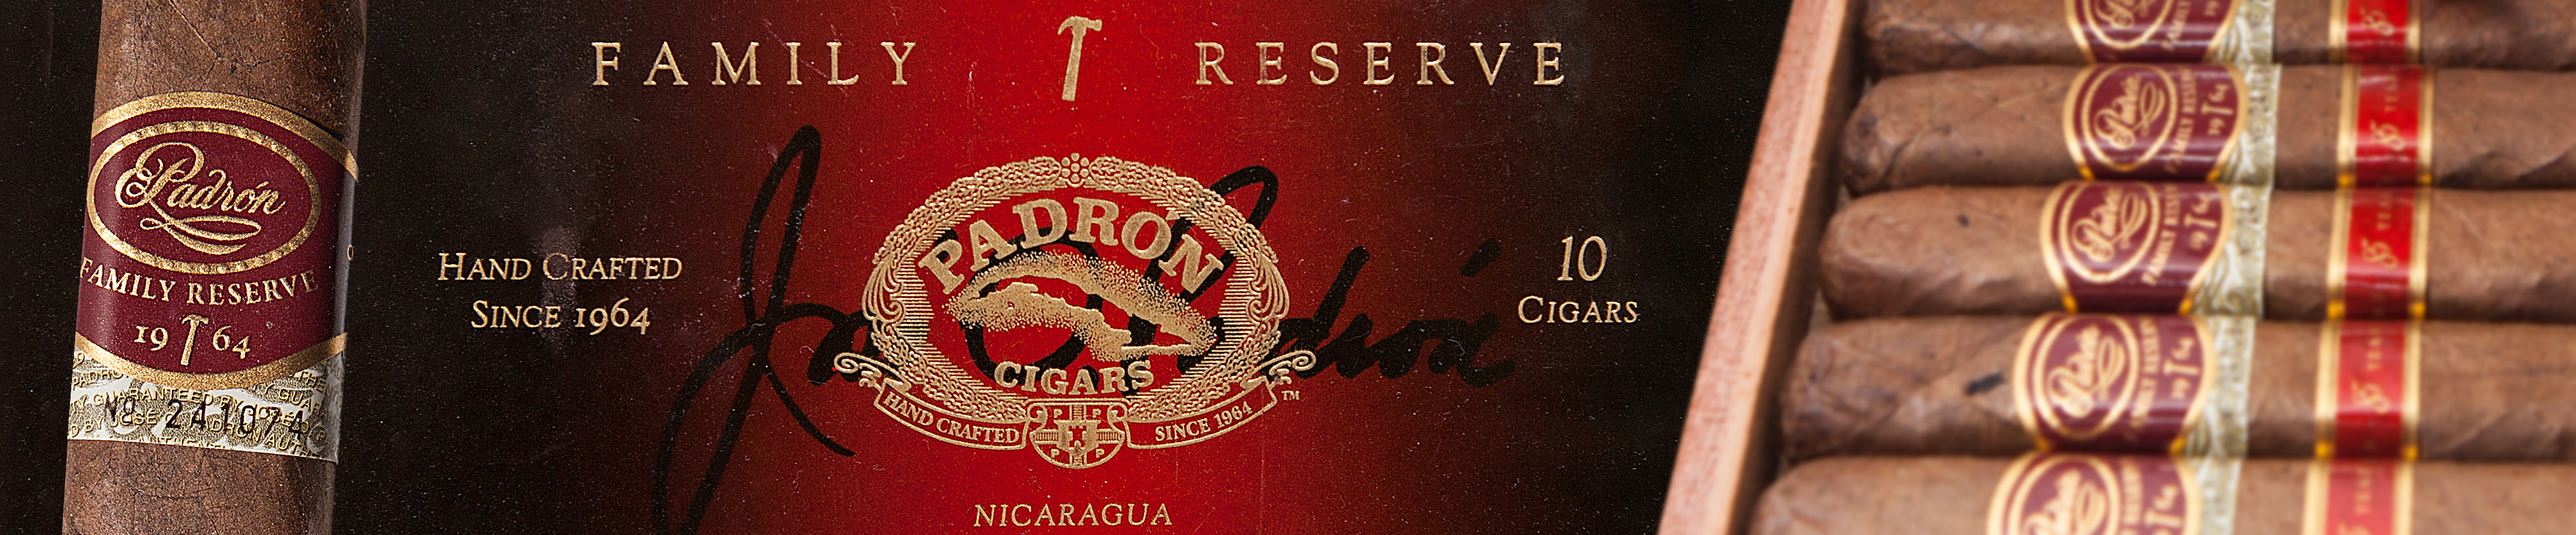 Padron Family Reserve